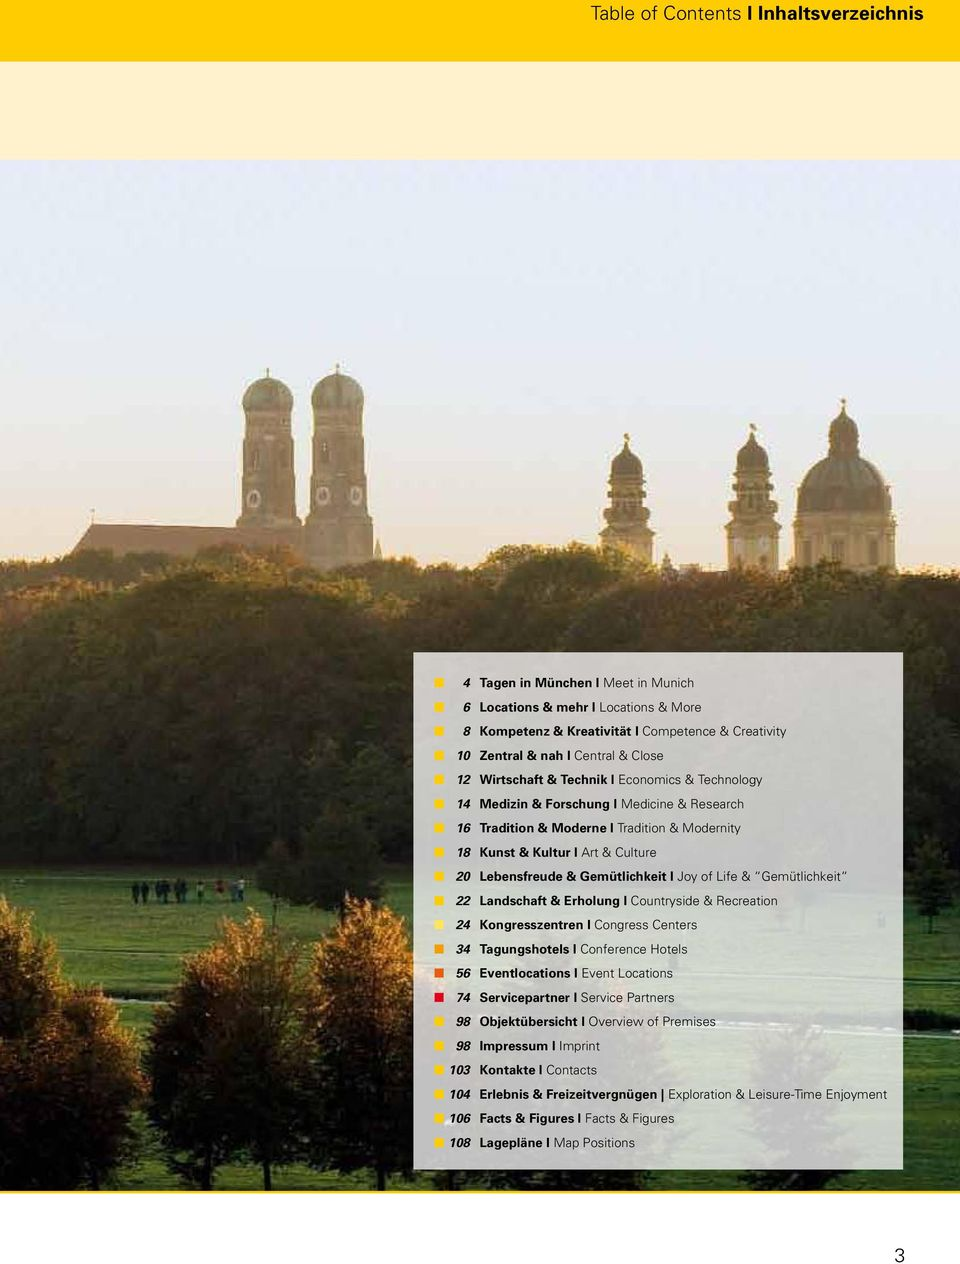 Lebensfreude & Gemütlichkeit l Joy of Life & Gemütlichkeit n 22 Landschaft & Erholung l Countryside & Recreation n 24 Kongresszentren l Congress Centers n 34 Tagungshotels l Conference Hotels n 56